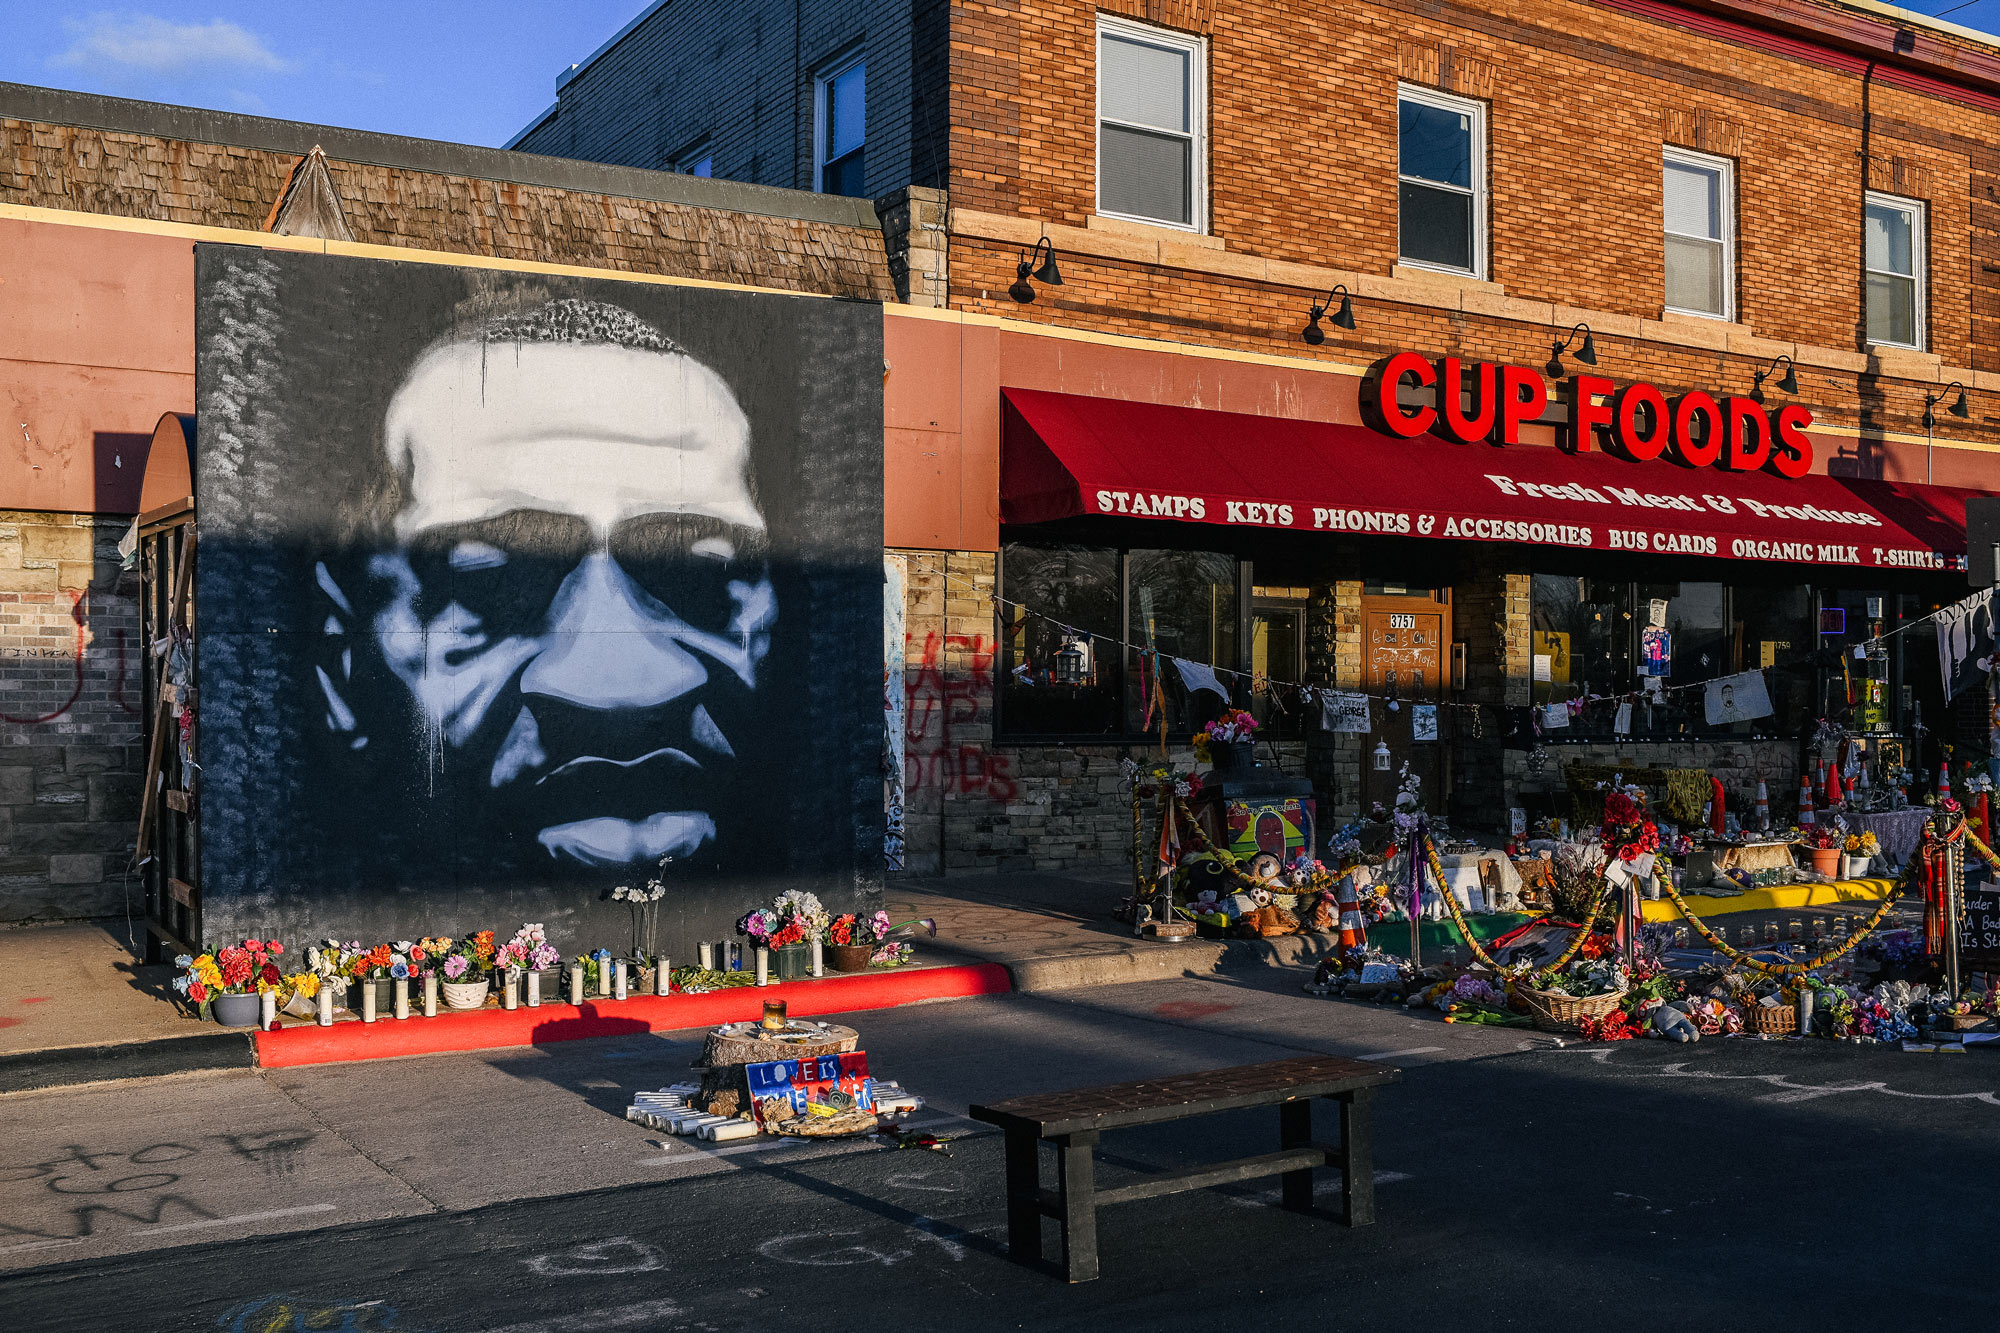 A mural of George Floyd is shown at the intersection of 38th St & Chicago Ave on March 31 in Minneapolis, Minnesota.